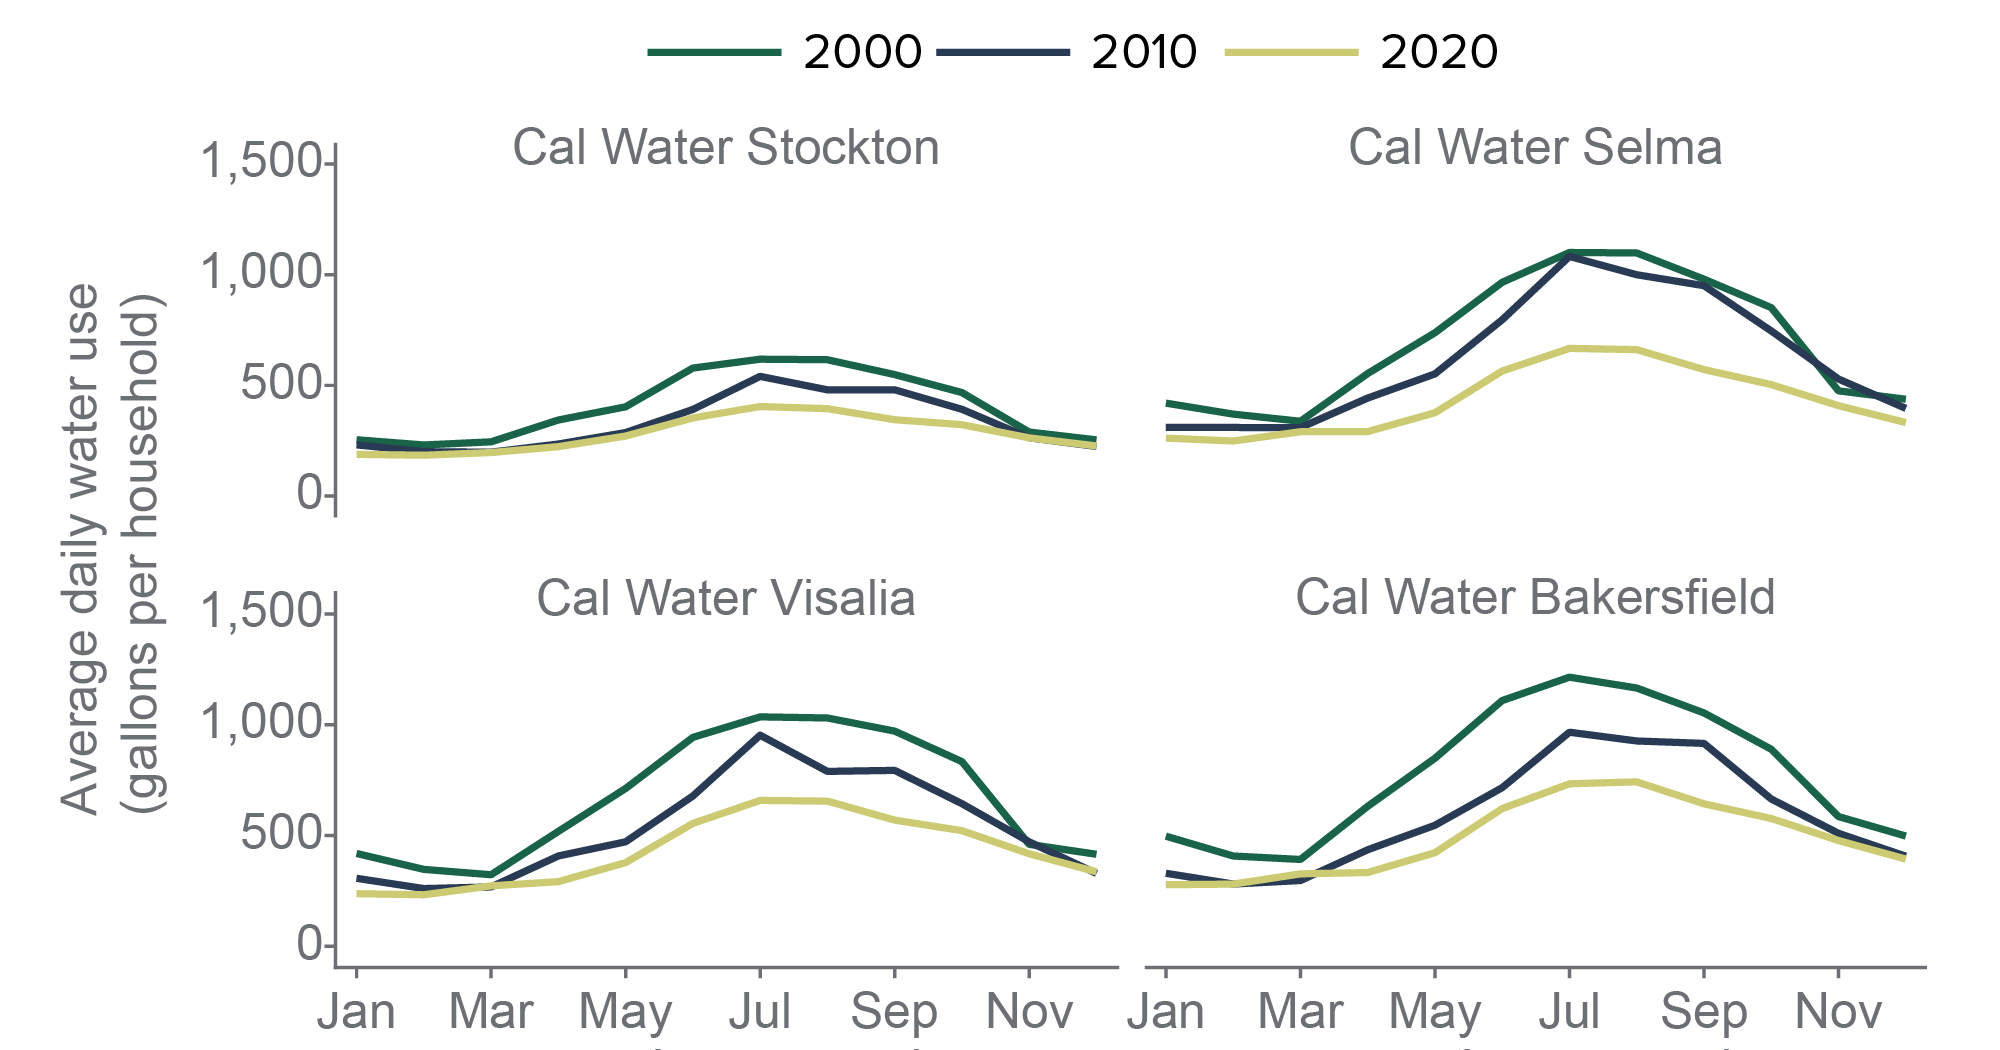 figure - Household water use has declined across the valleys Cal Water service areas, especially in summer months